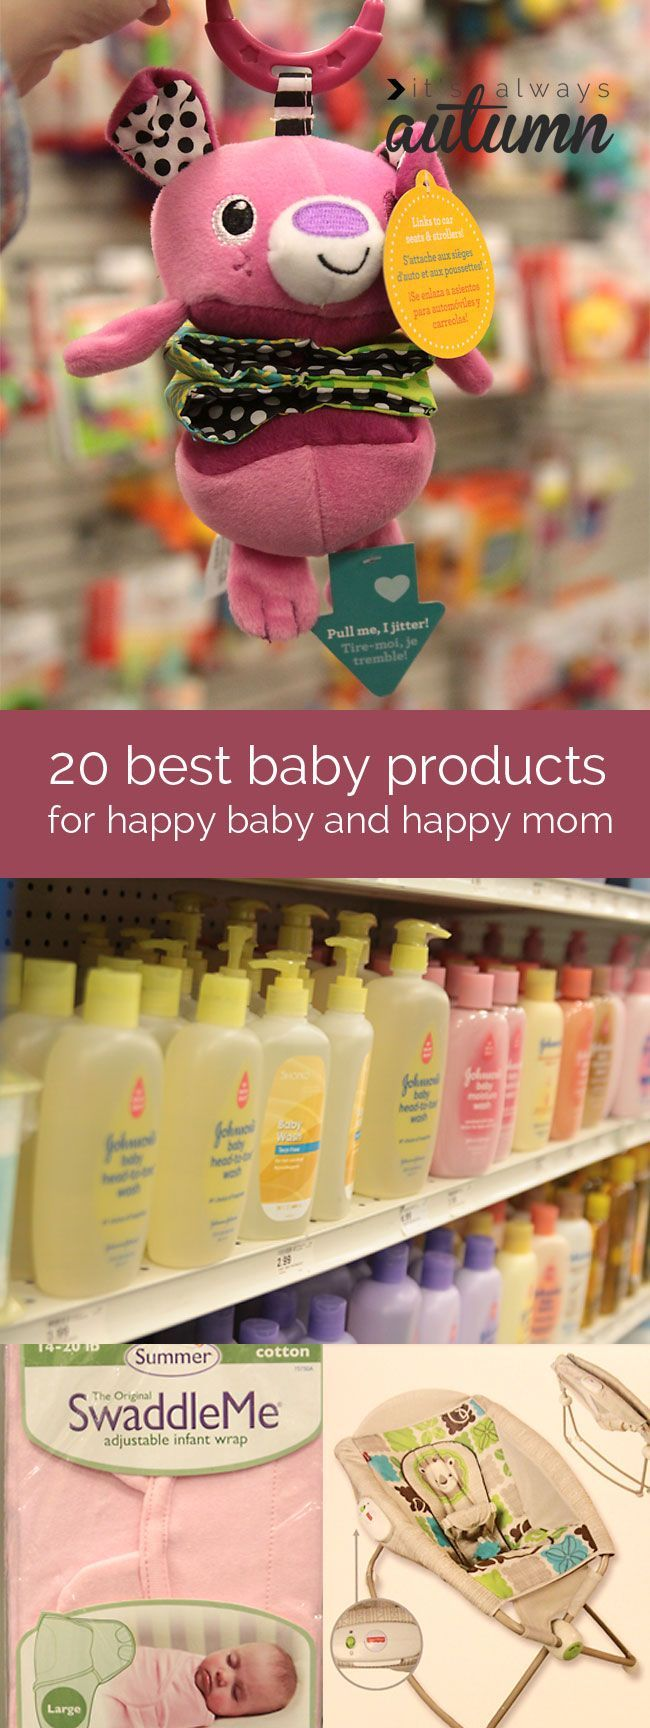 20 best baby products for a new mom - honestly, no one needs all of these things, but many of them would sure make life easier! | via @It's Always Autumn